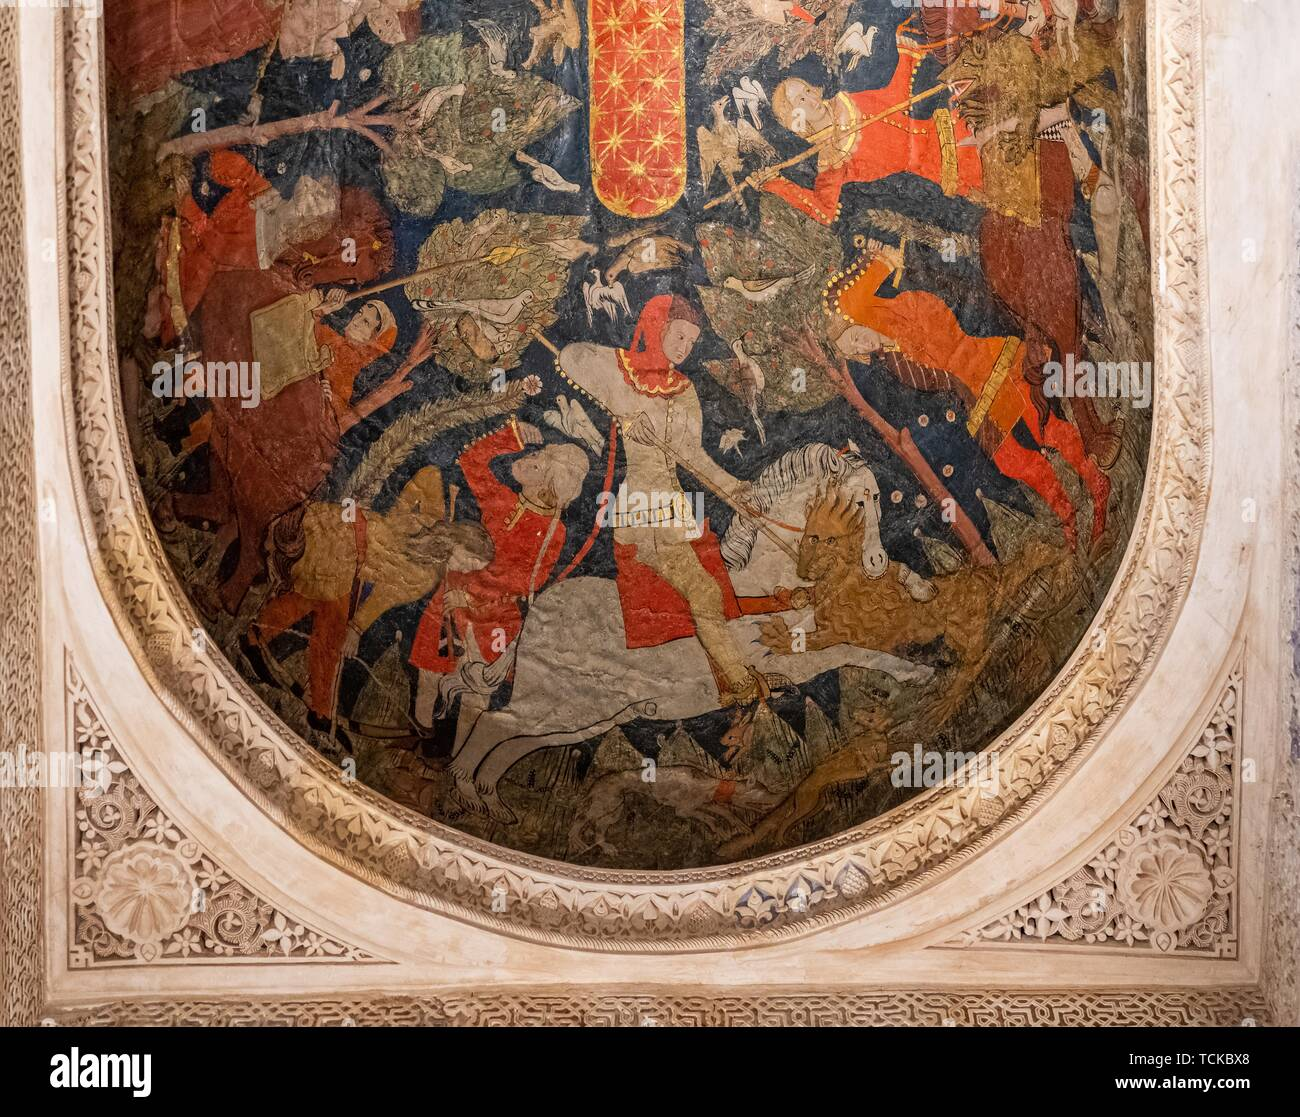 Ceiling painting, Sala de los Reyes, Room of the Kings, Nasrid palaces, Alhambra, Granada, Andalusia, Spain - Stock Image